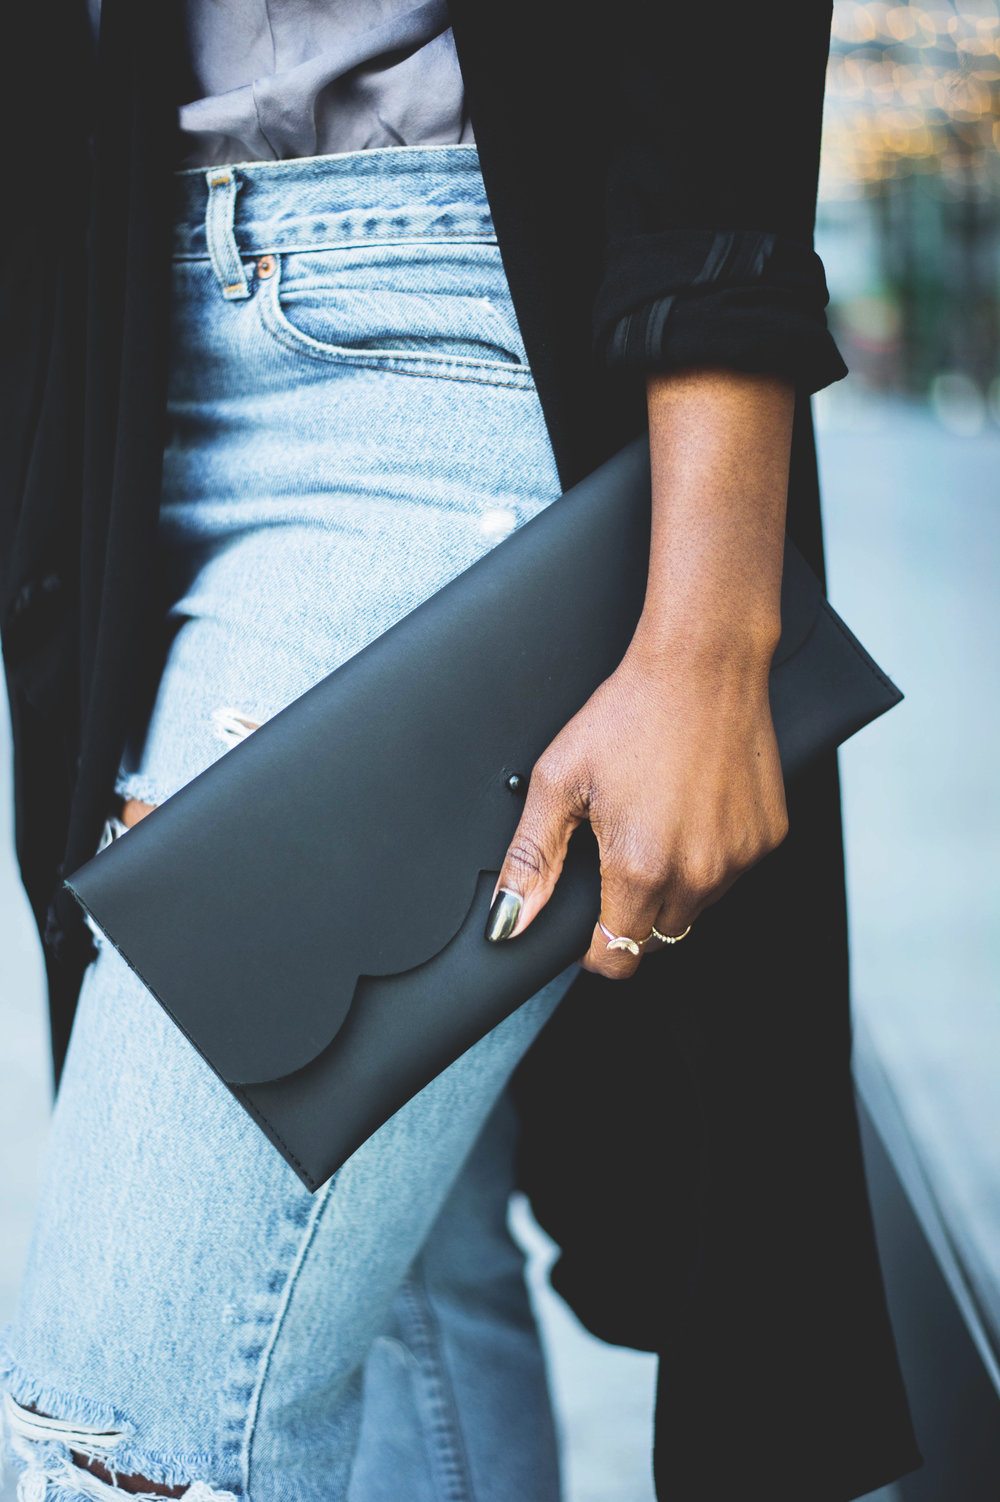 The_Glossier_Tasha_James_Blogger_Style_Fashion_Matine_Studio_All_Black_City_Center_DC-53.jpg